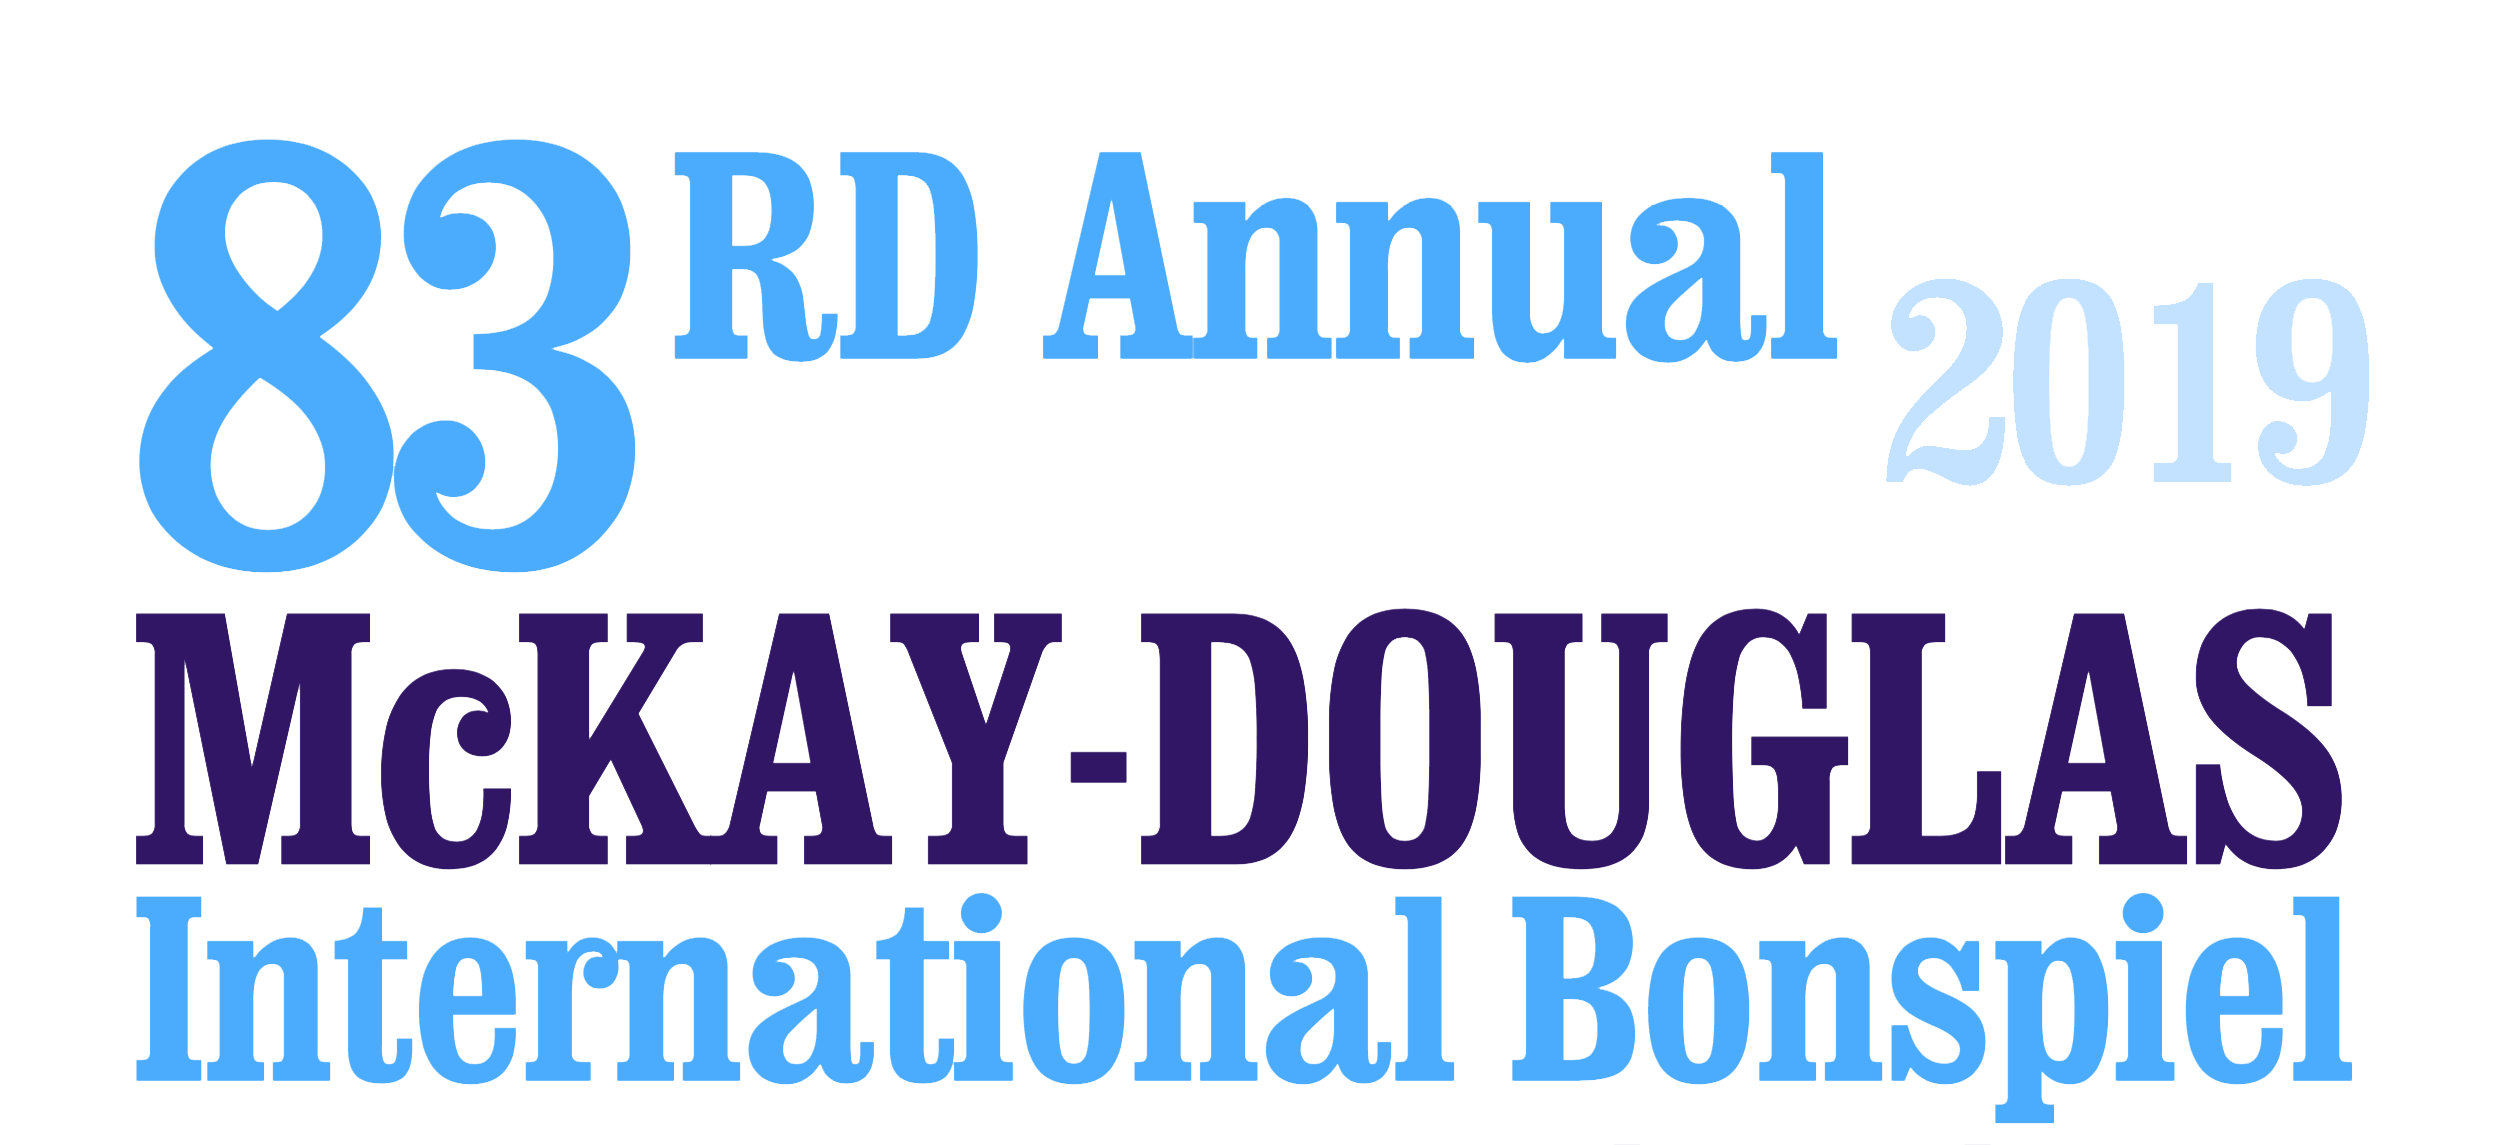 mckay douglas 2019 banner clear bgd